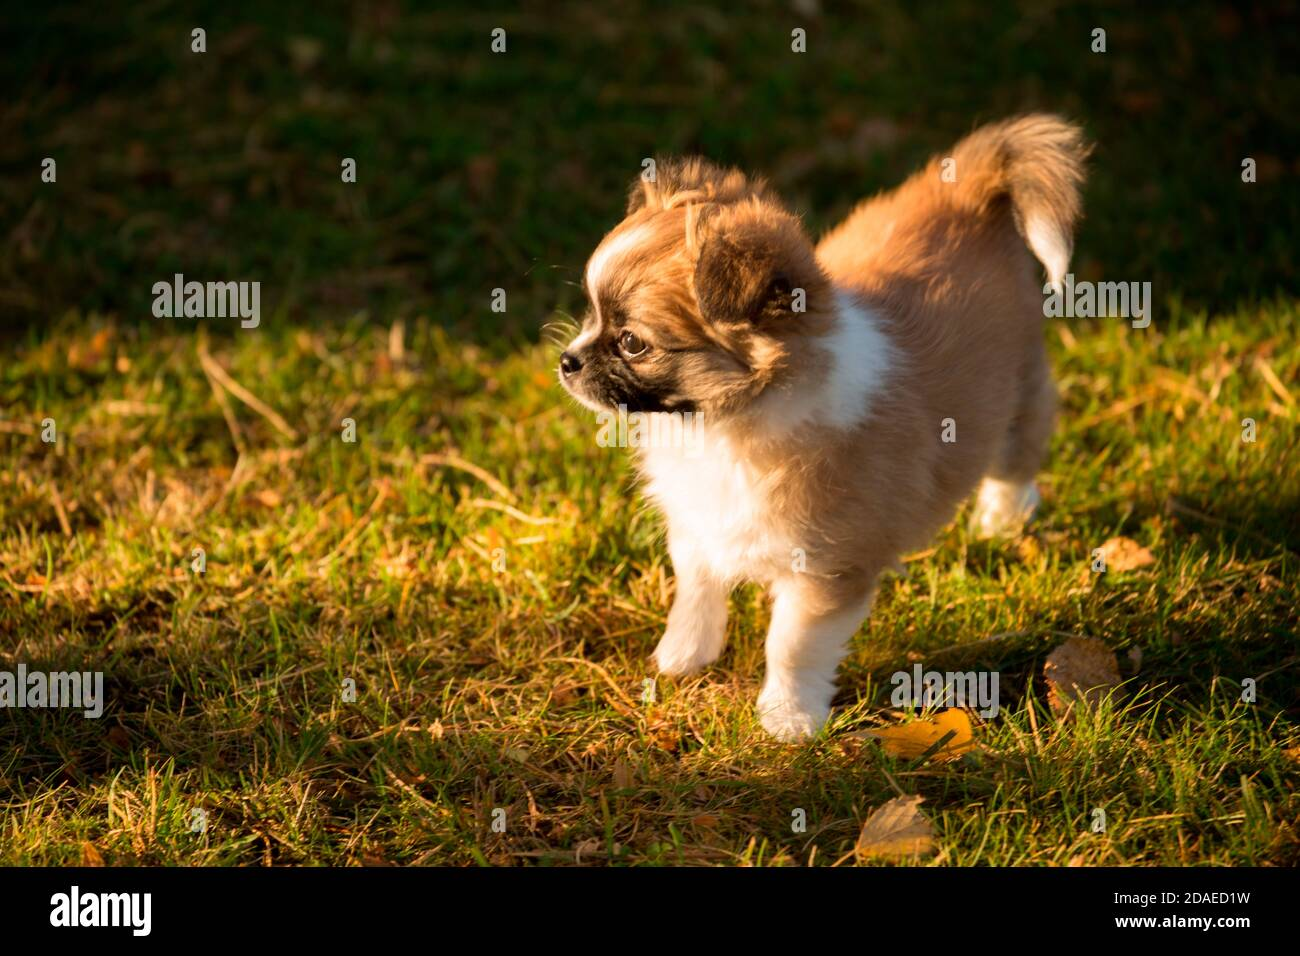 Chihuahua puppy, longhaired, garden, Finland Stock Photo